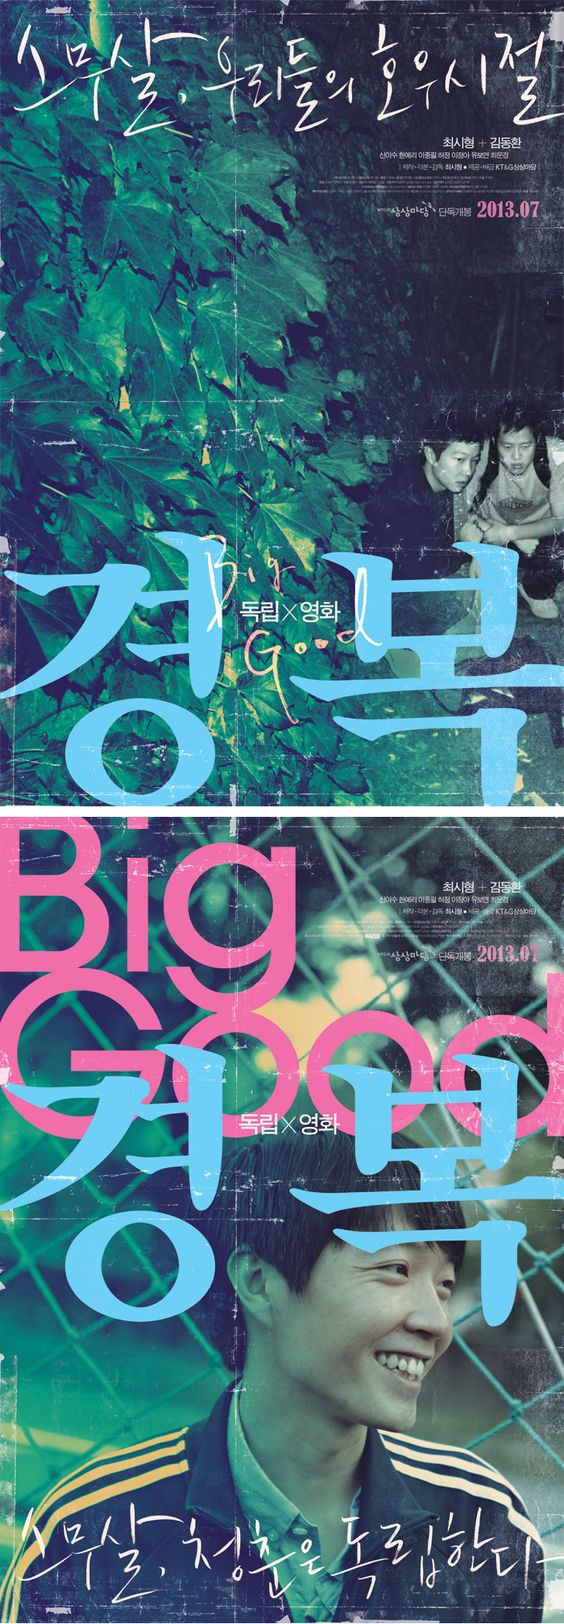 Film :: alternative graphics - PROPAGANDA :: - 경복 Big Good